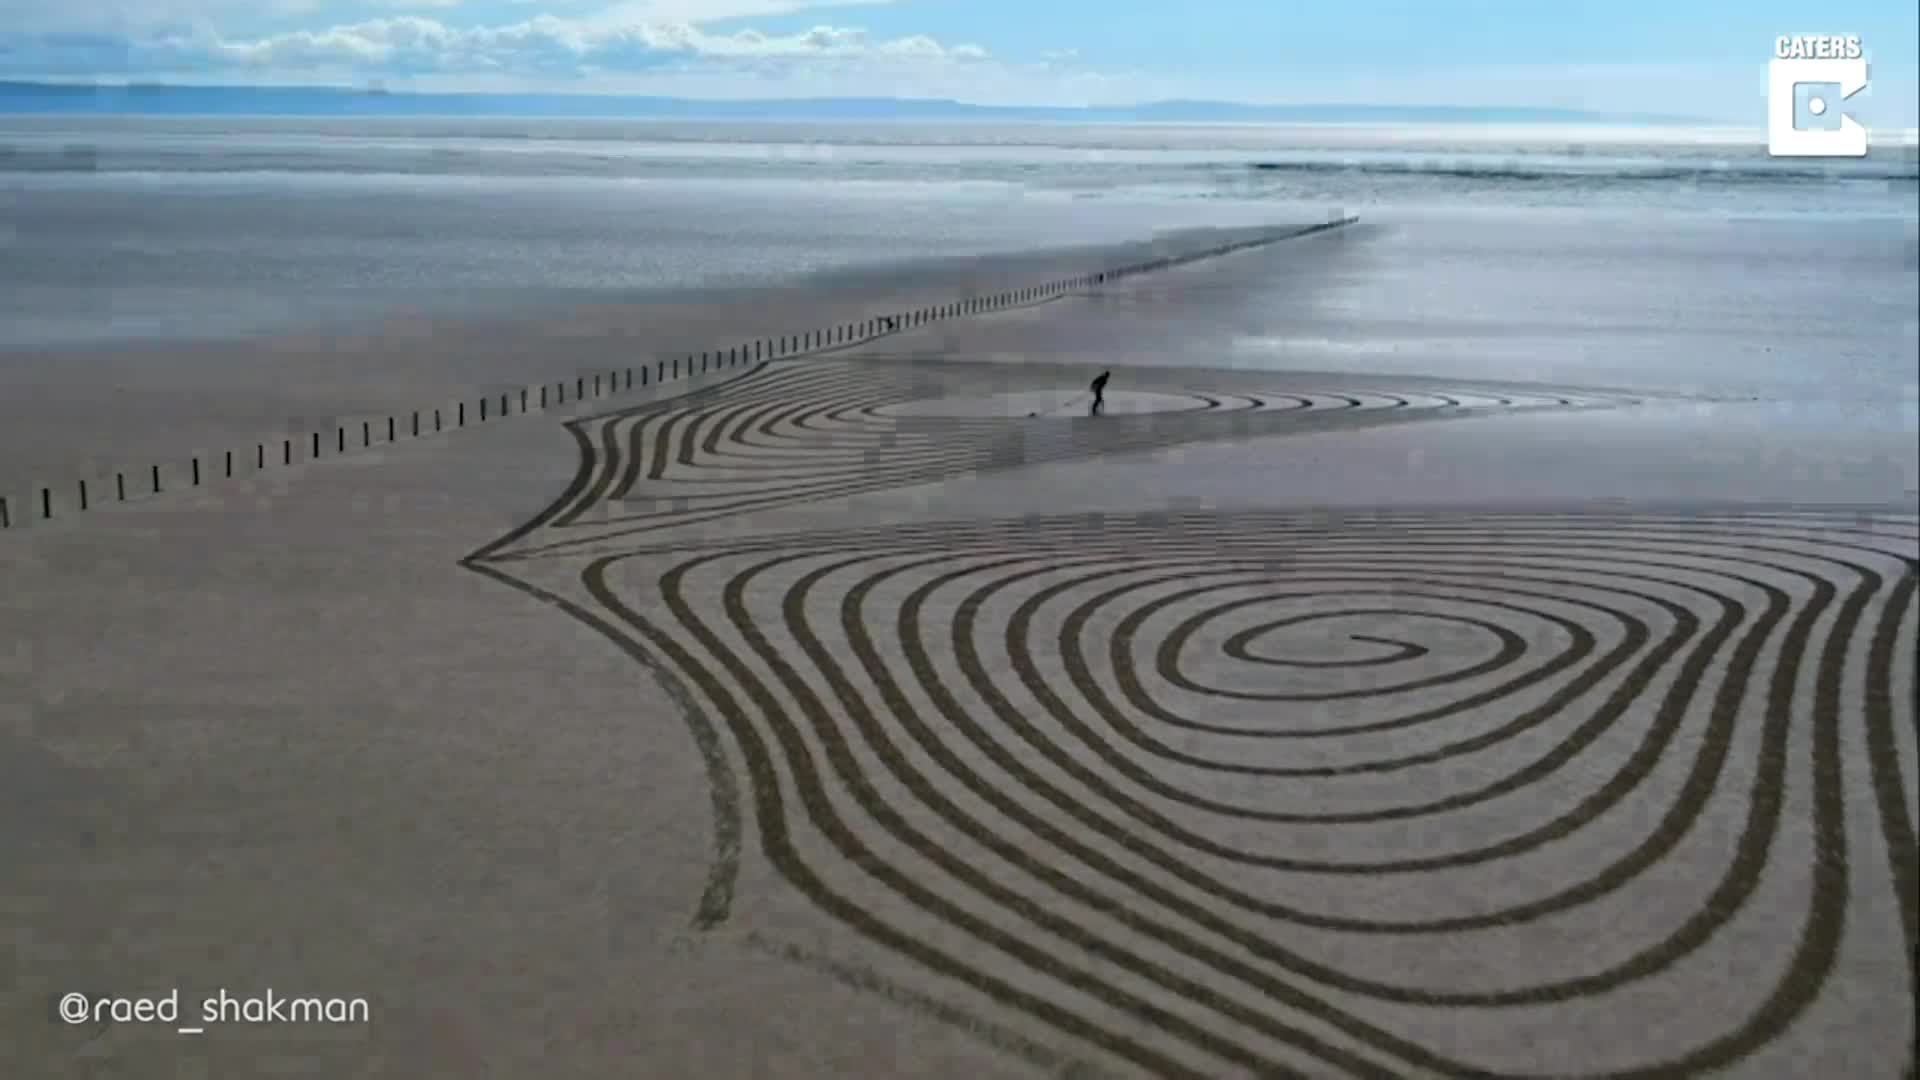 STUNNING SAND ART CAPTURED FROM THE AIR ON THE SHORES OF UK